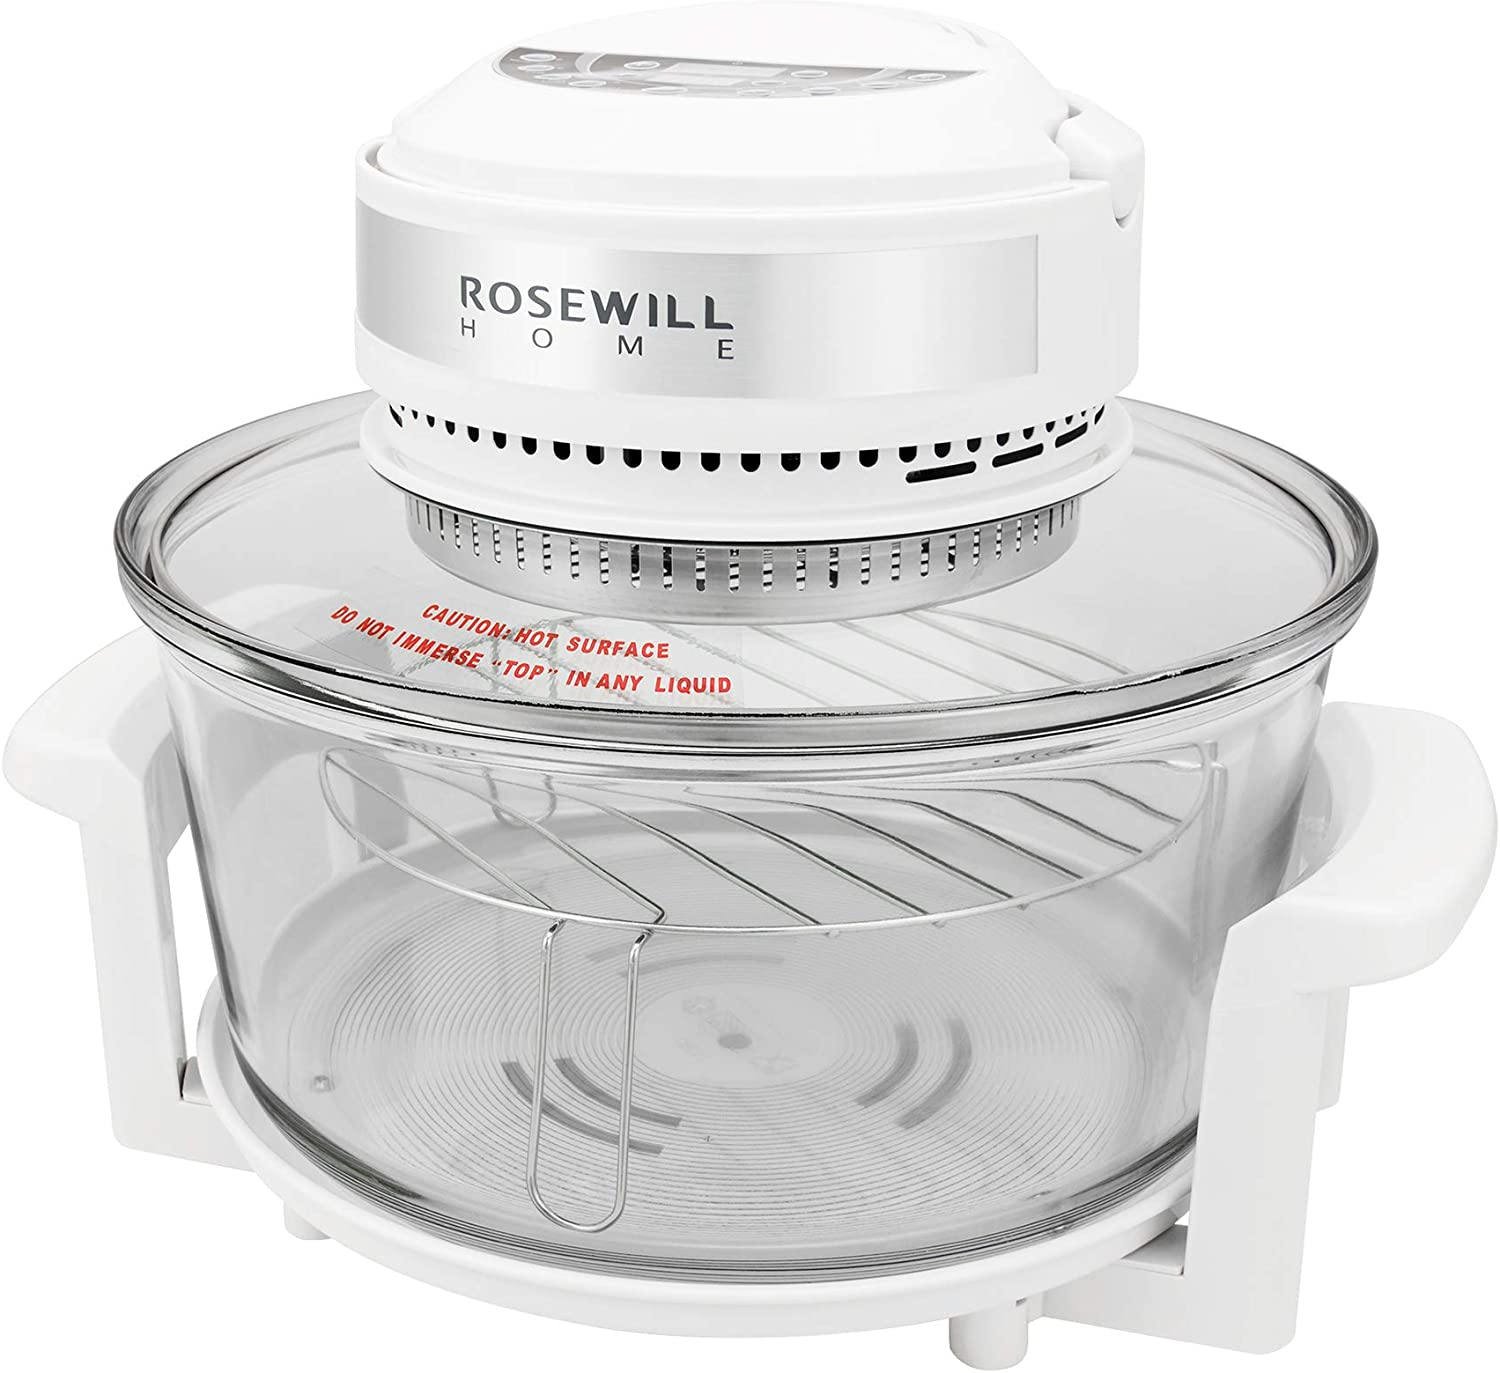 Rosewill RHCO-16001 Infrared Halogen Convection Technology Digital Oven with extender ring